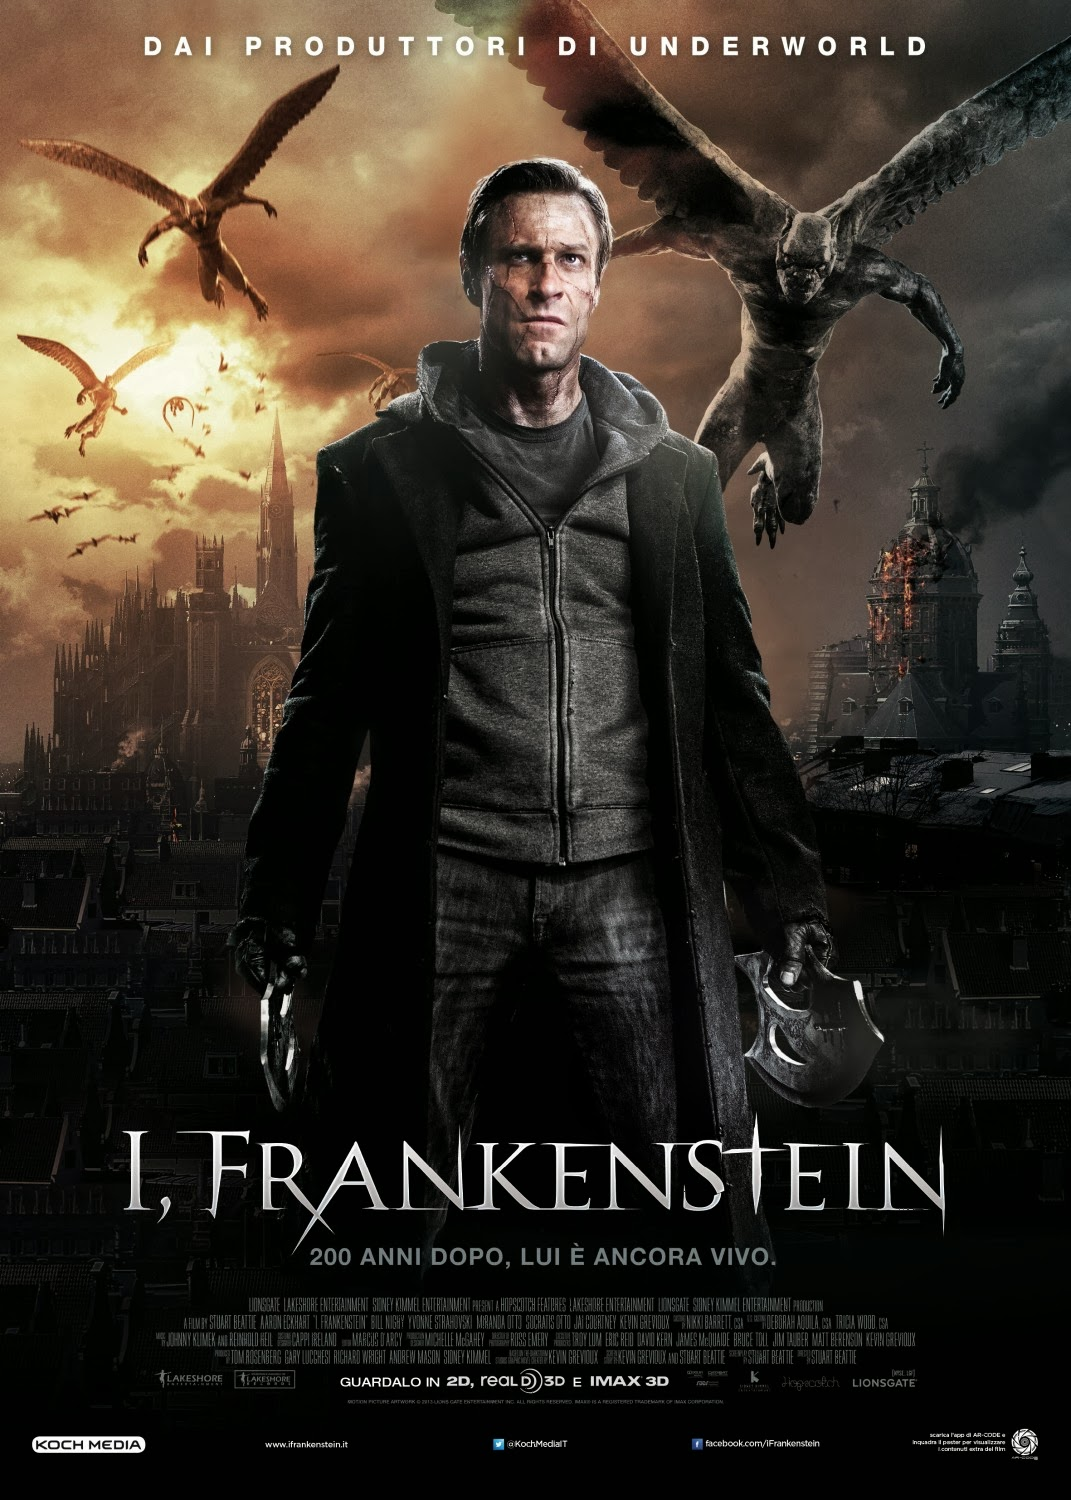 i, frankenstein full movie free download on hd